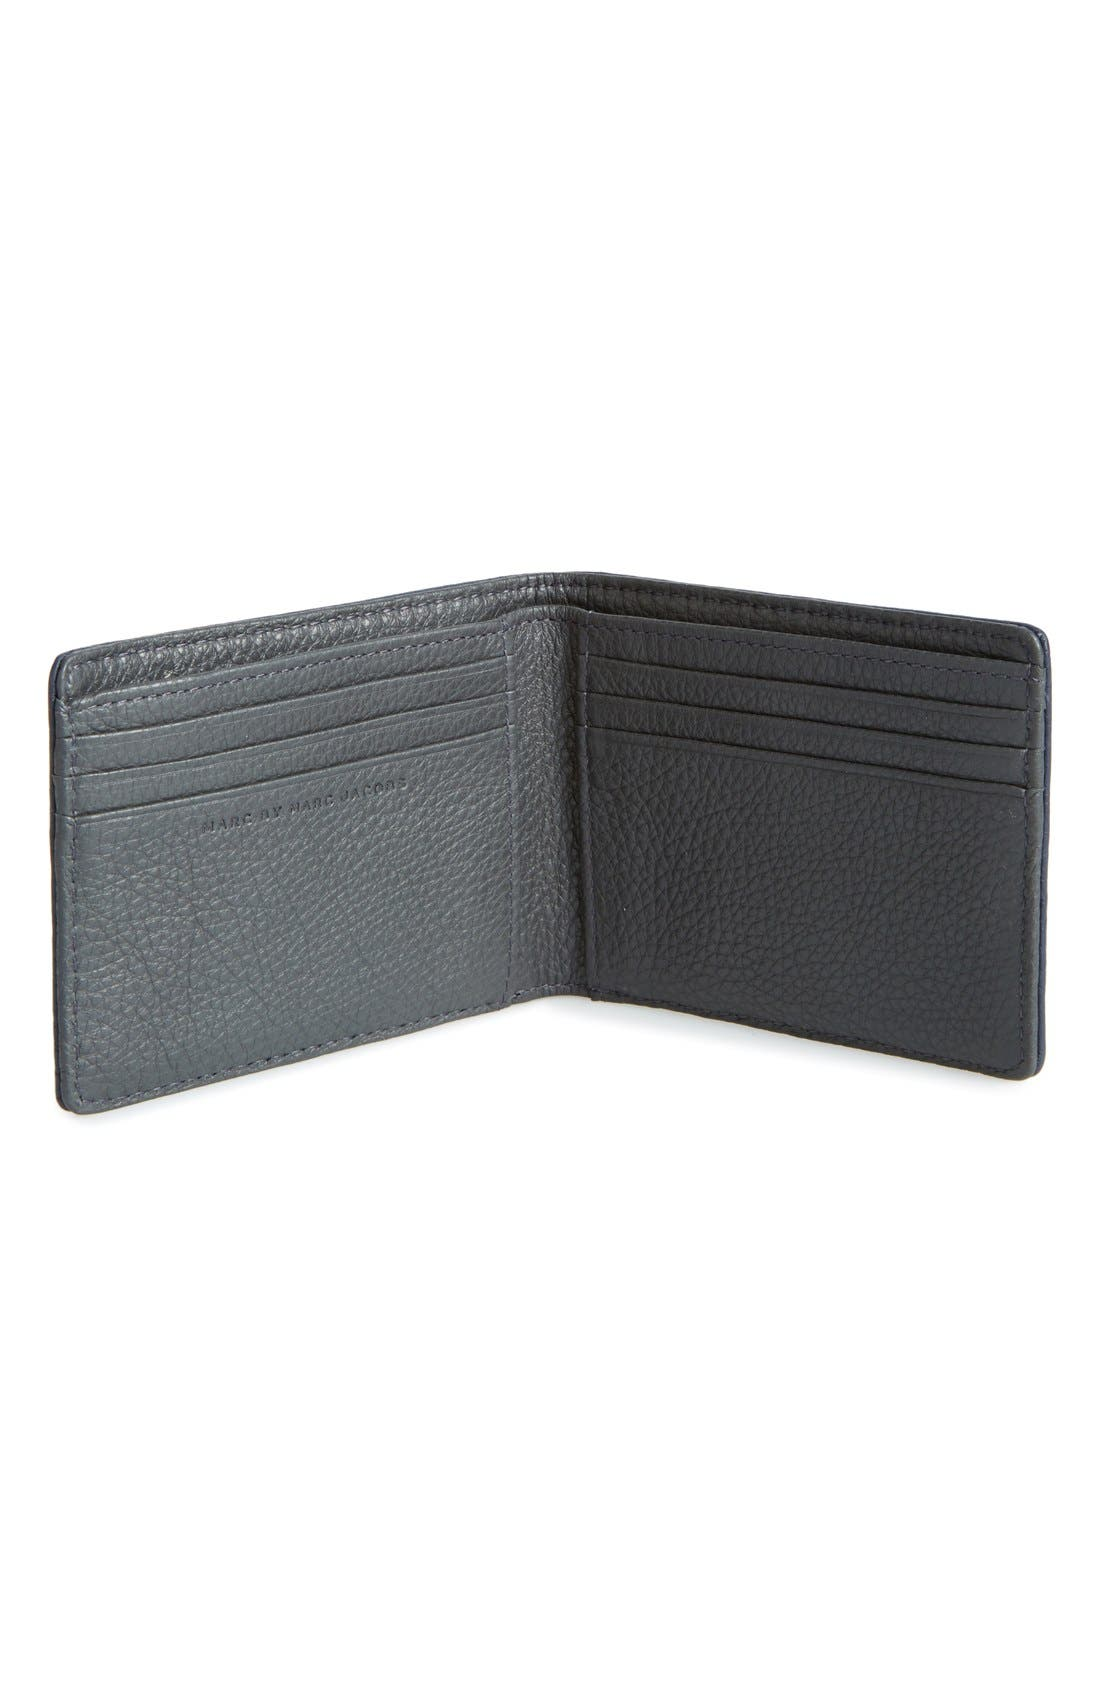 'Martin' Leather Bifold Wallet,                             Alternate thumbnail 2, color,                             495